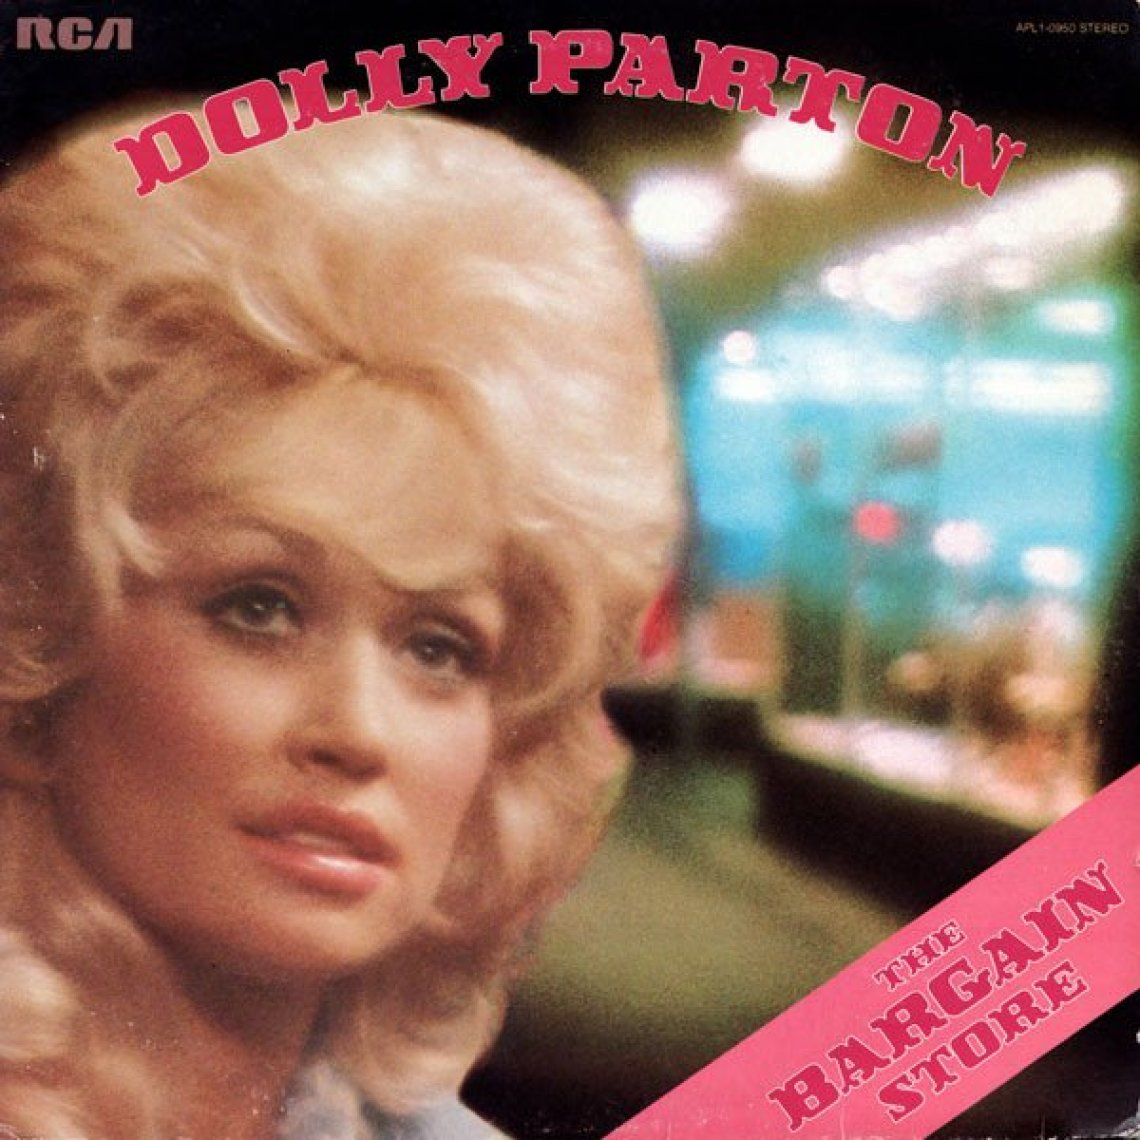 The Bargain Store (1975) - The Legend Slot - Dolly Parton